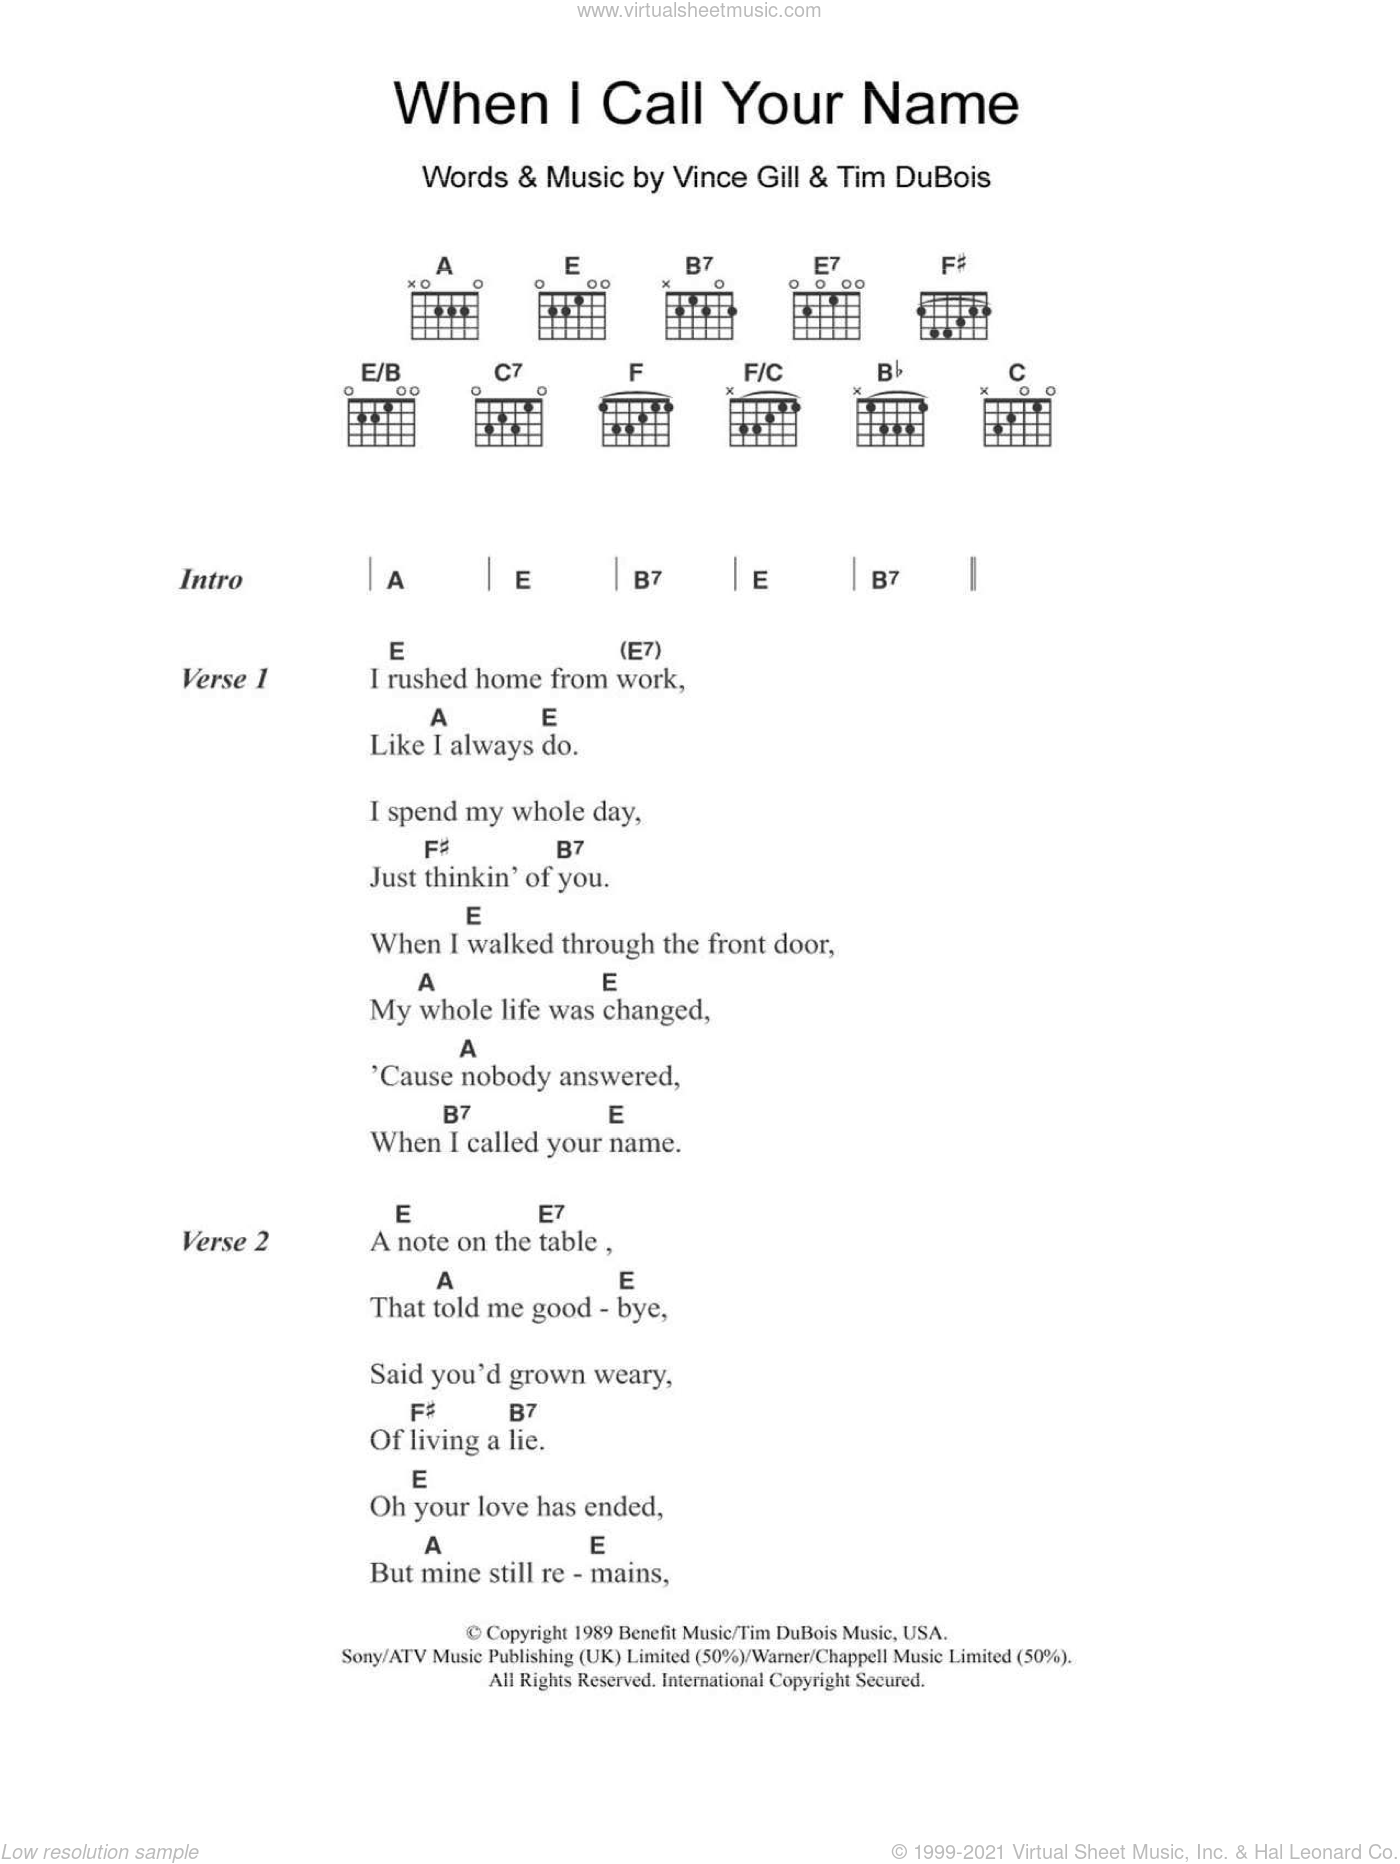 Gill - When I Call Your Name sheet music for guitar (chords)